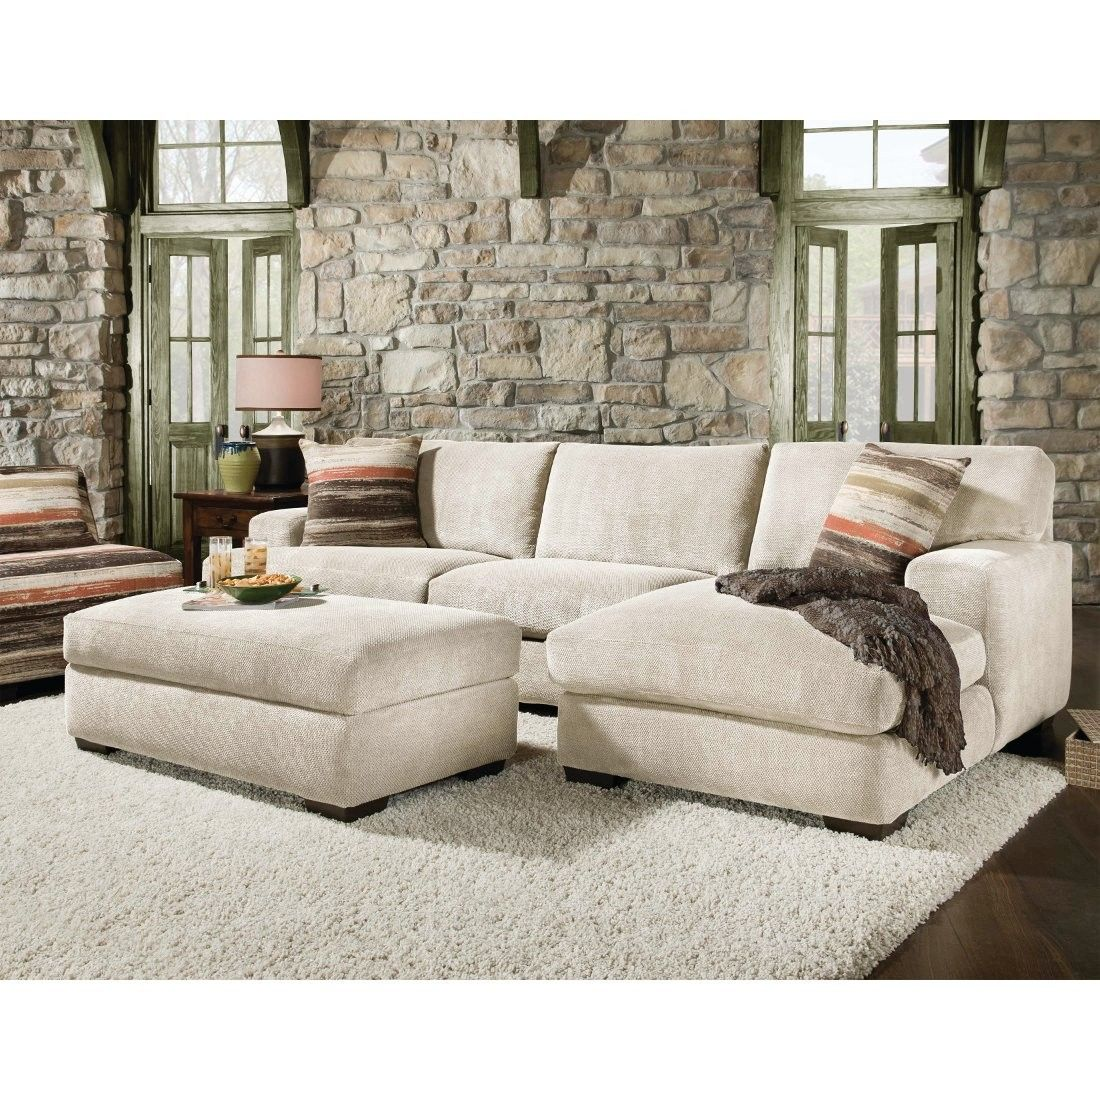 - Sectional Sofas With Chaise – Enjoy Ultimate Comfort